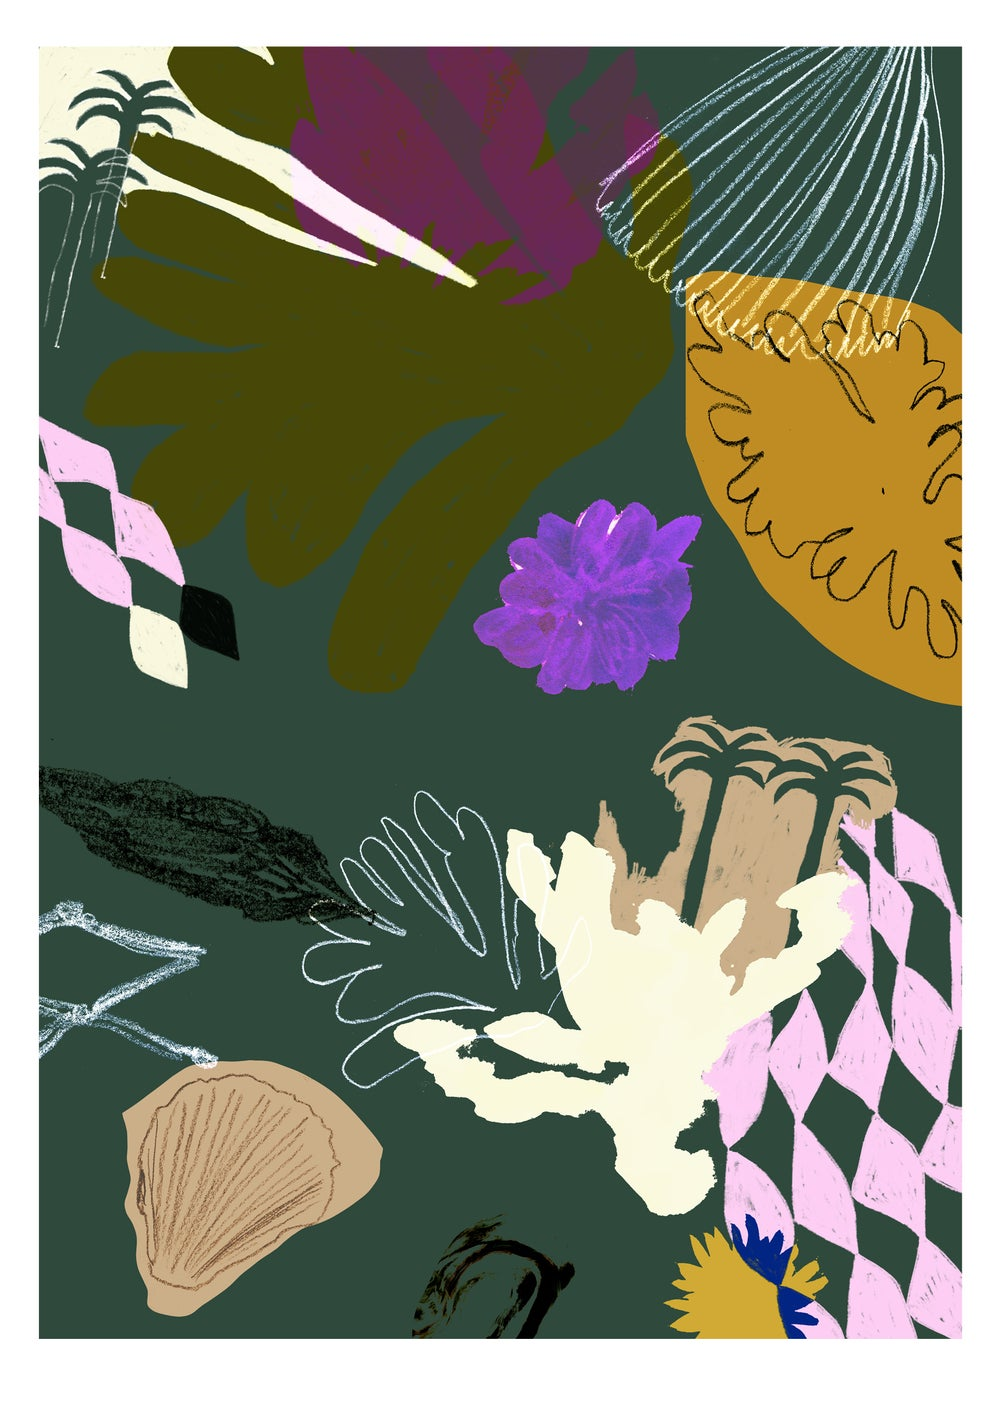 Image of Beach Fragments giclee print